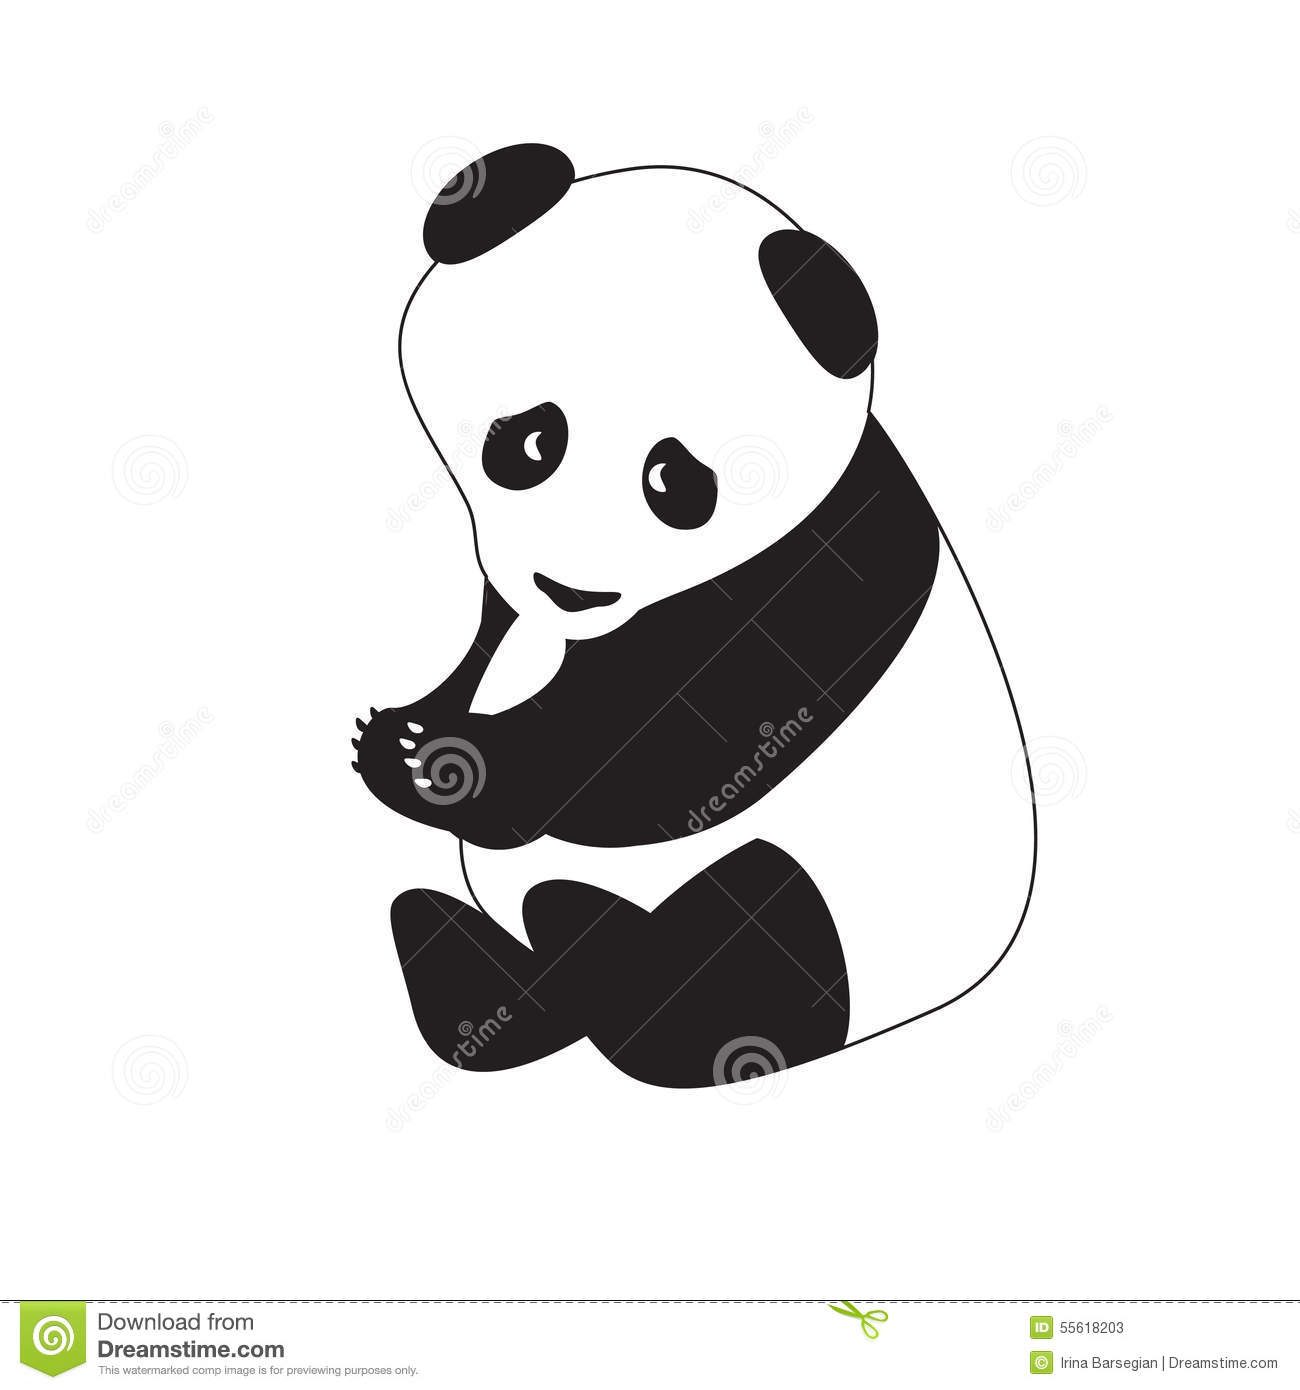 Isolated Black White Pandactor Illustration Stock Vector